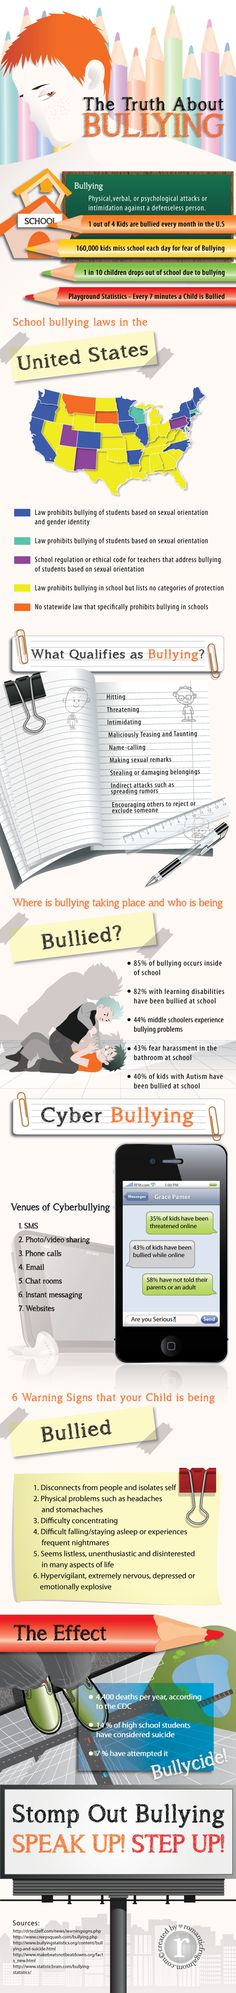 The most shocking part of this information is that 58% of kids being bullied haven't told an adult or parent.